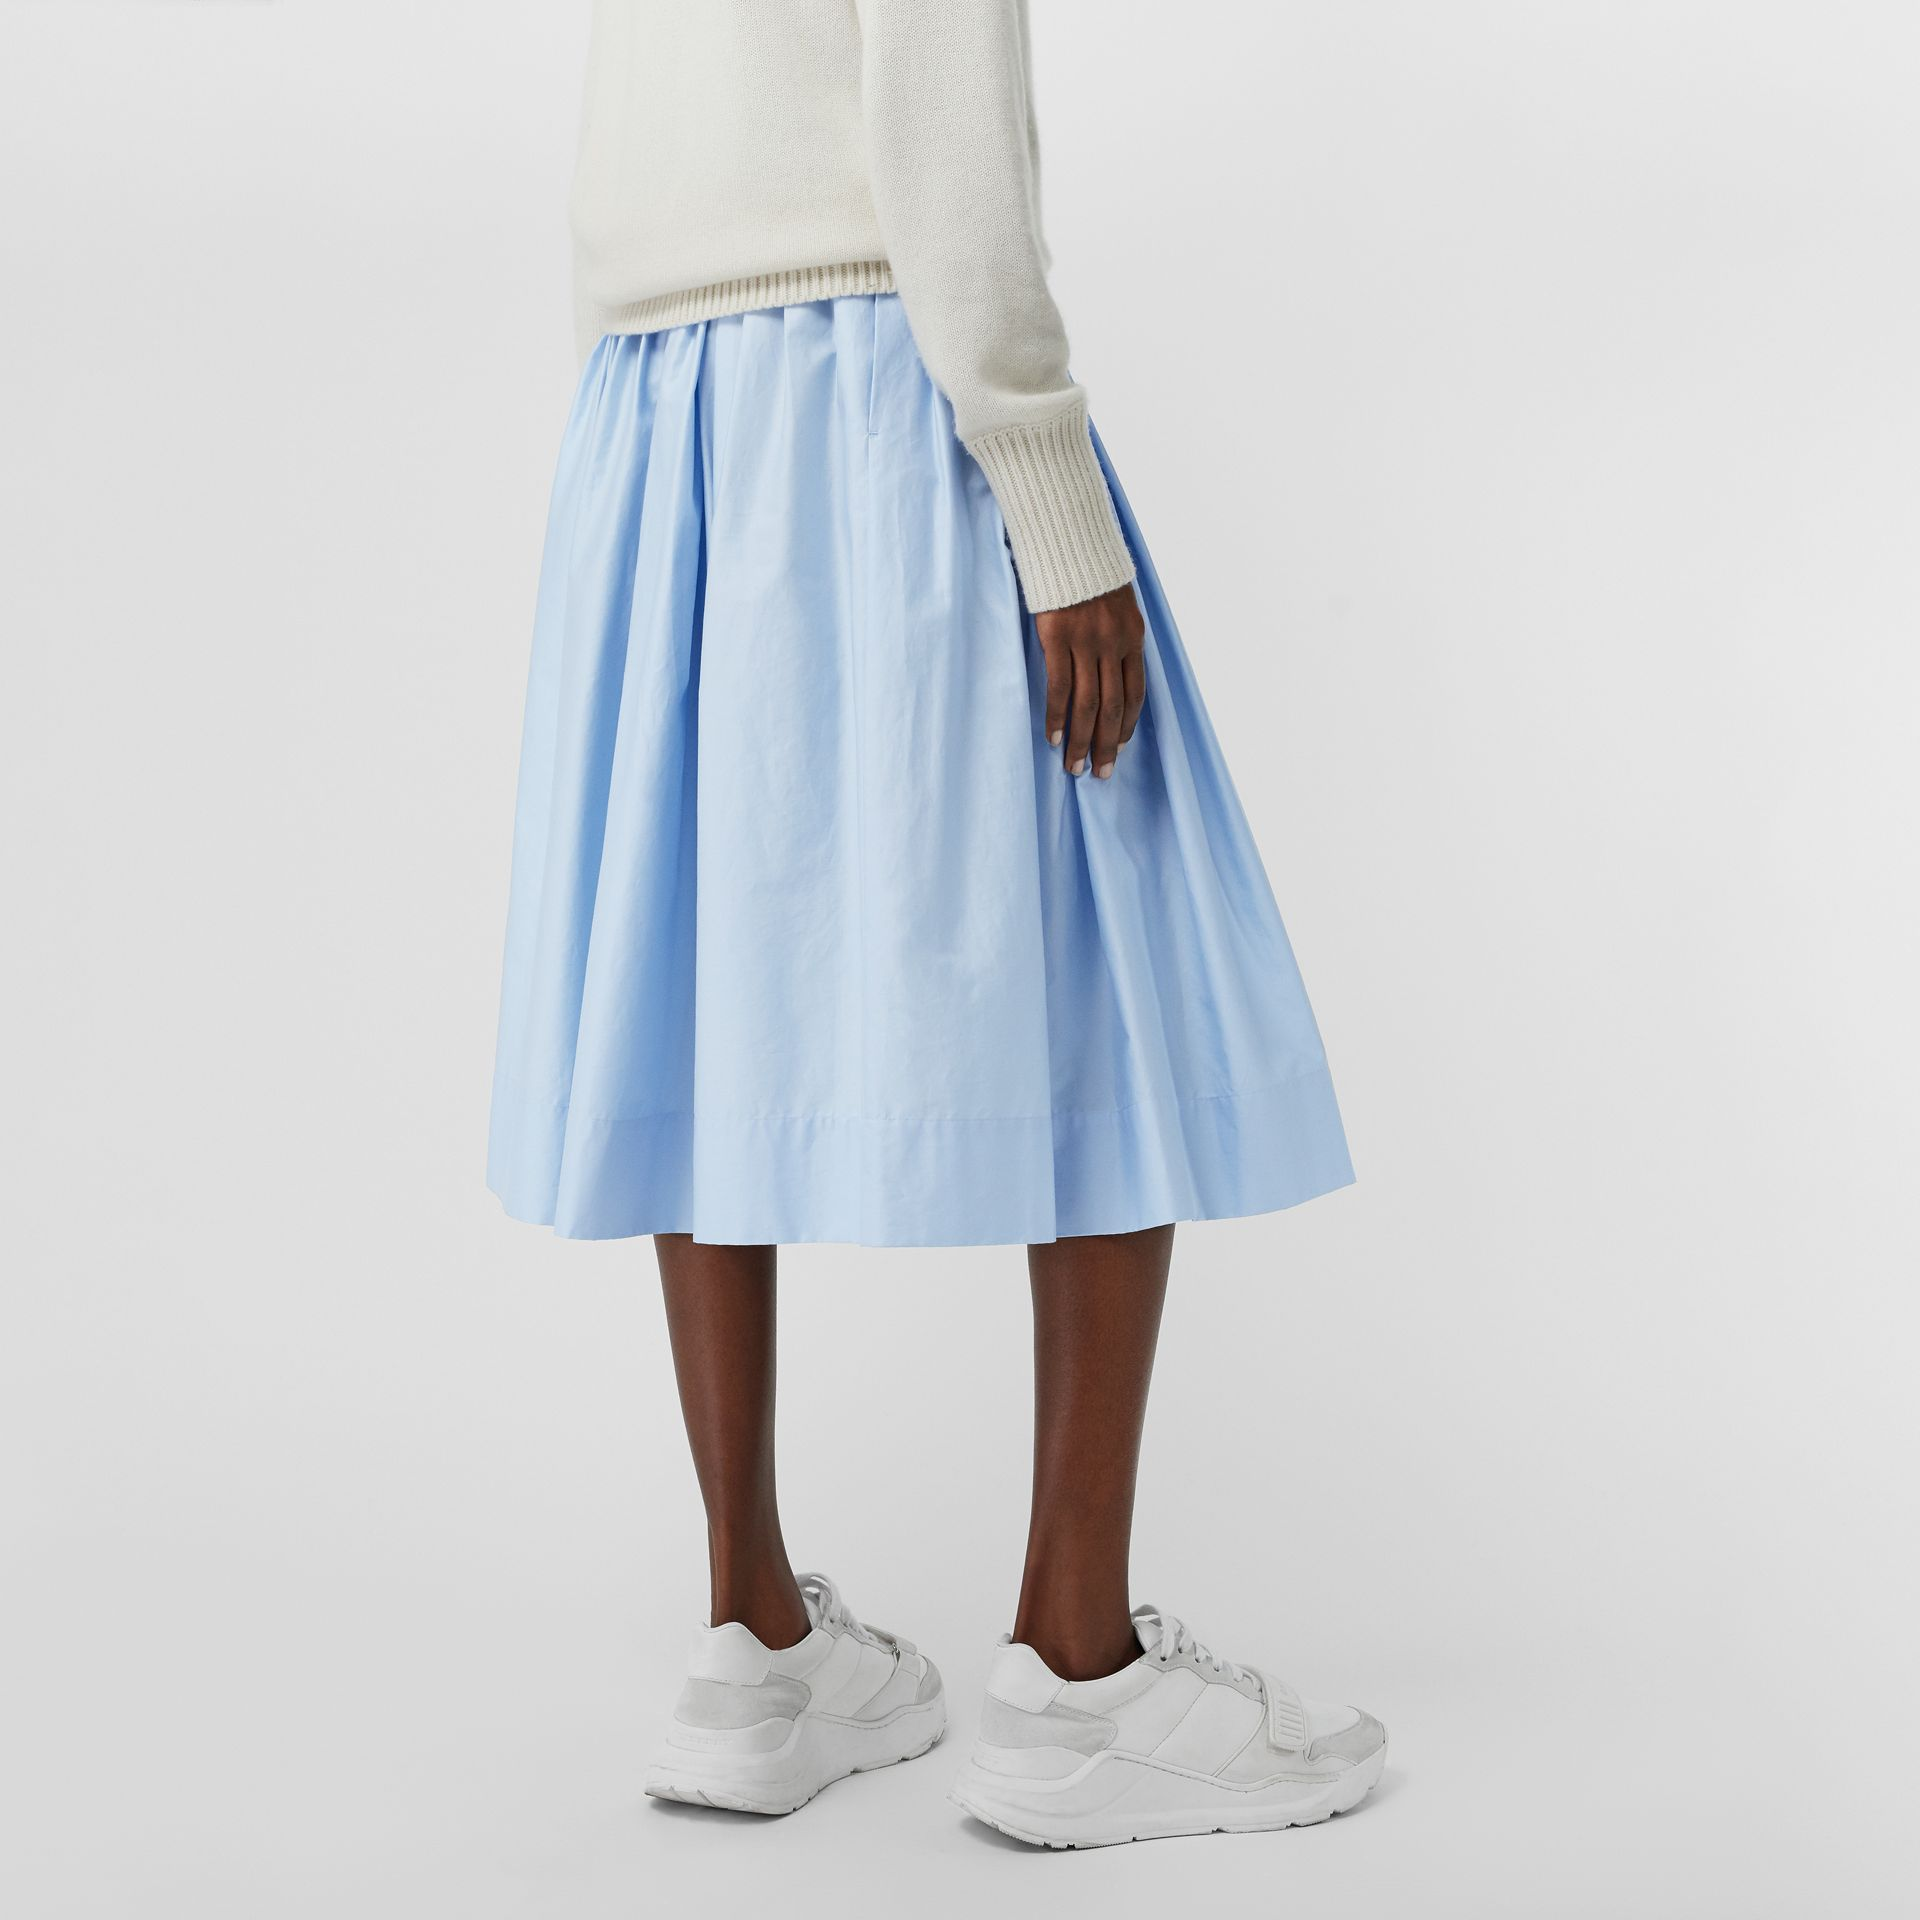 Rainbow Print Cotton Sateen Skirt in Light Blue - Women | Burberry Singapore - gallery image 2